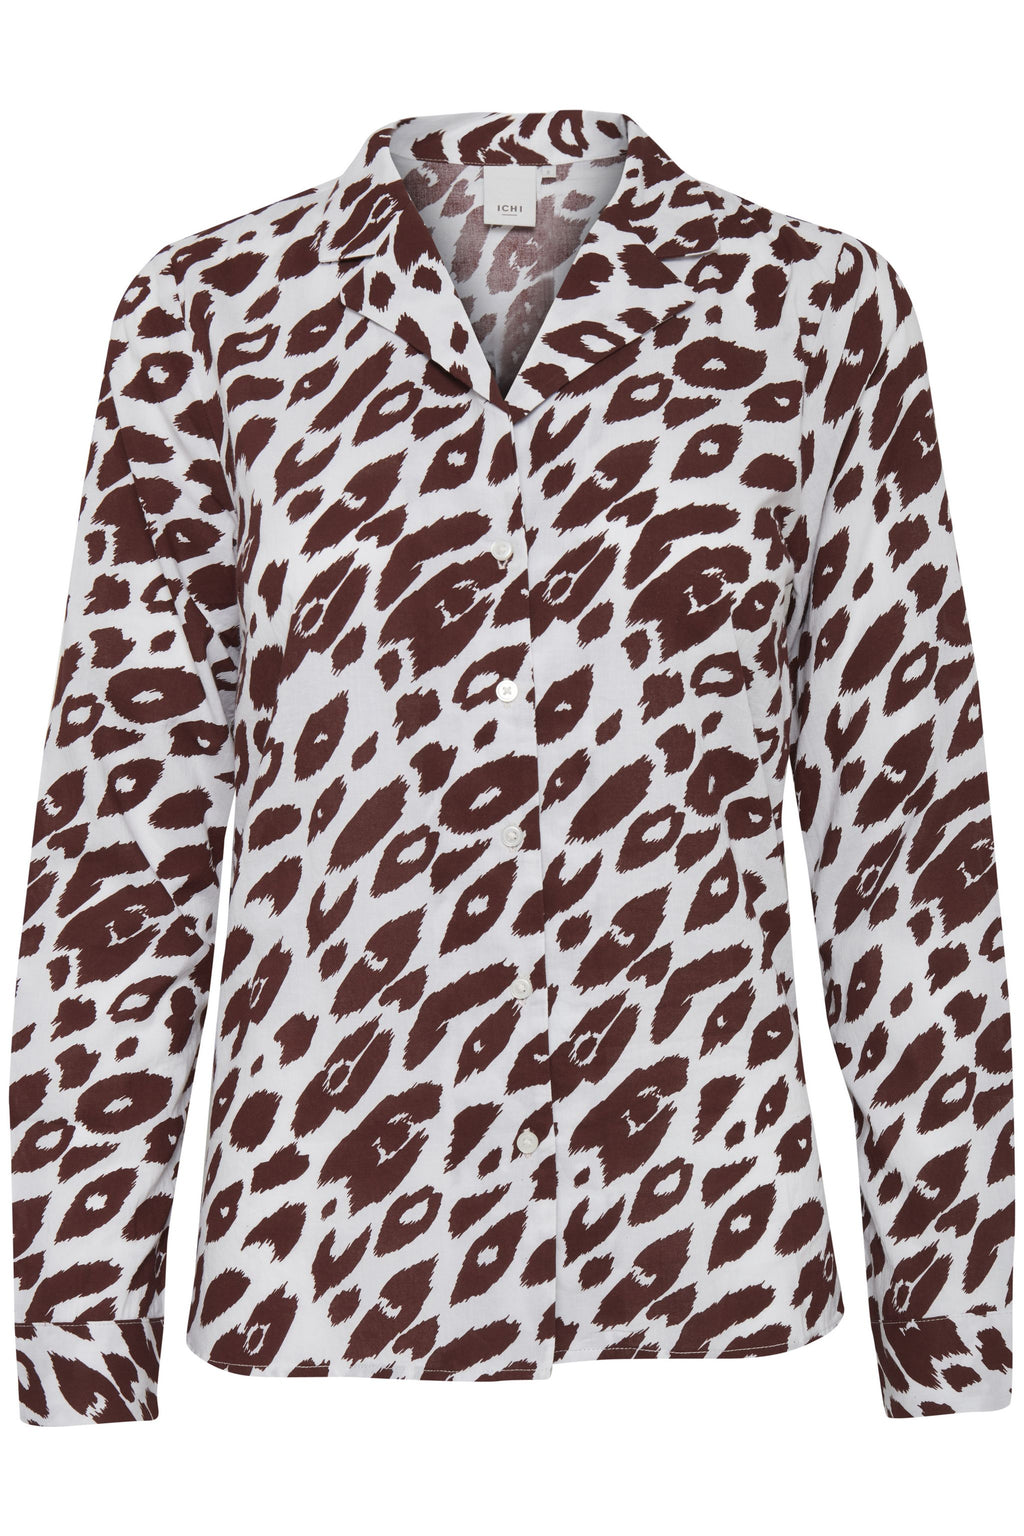 VIBEKE long sleeve animal print bowler shirt - andorra